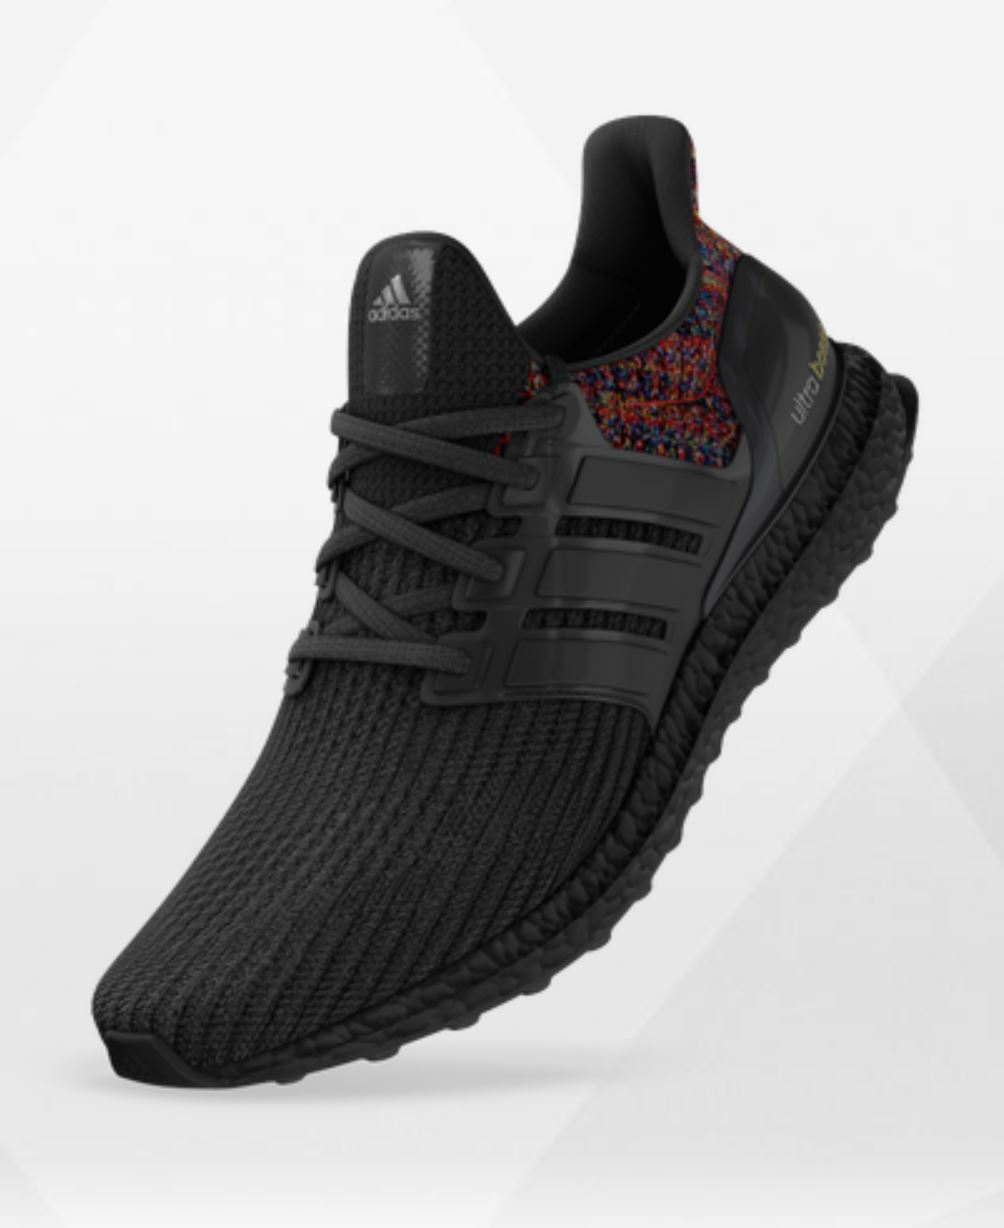 2018 Adidas Ultra Boost 4.0 CNY Chinese New Year 8 13 Black Red